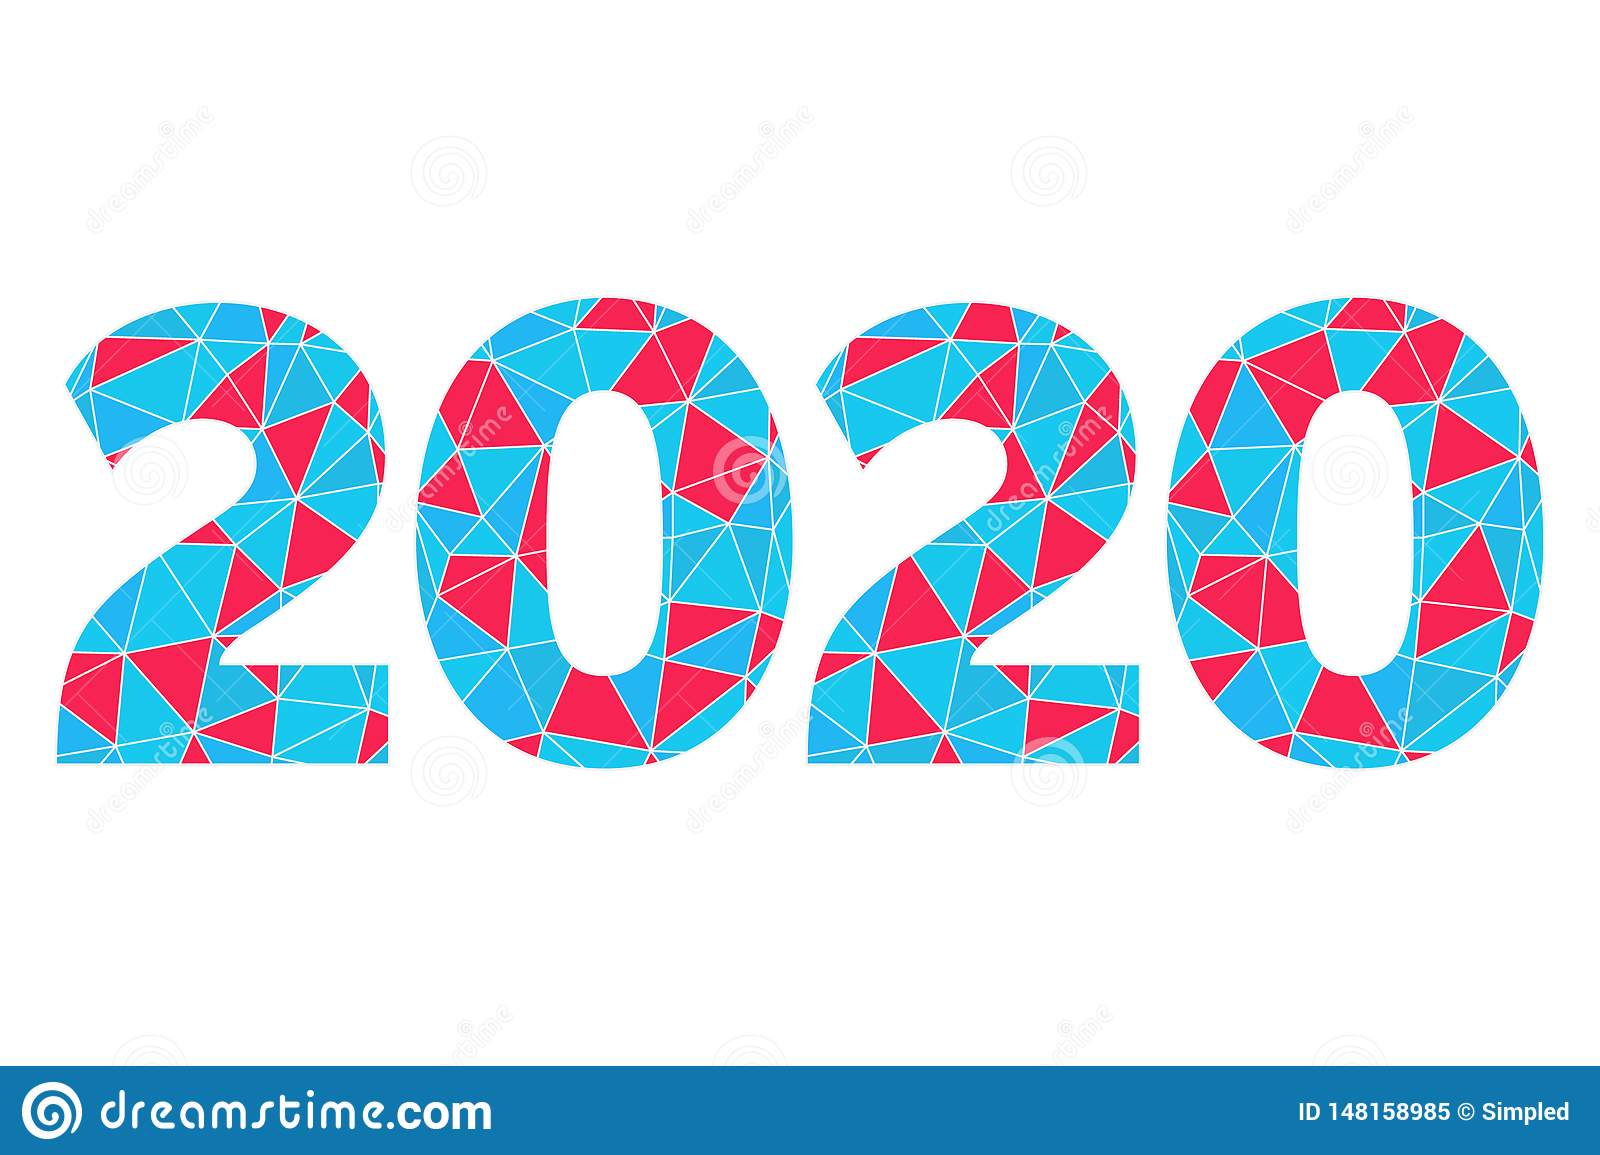 2020 vector geometric icon. Happy New Year abstract illustration for decoration, celebration, winter holiday, infographic